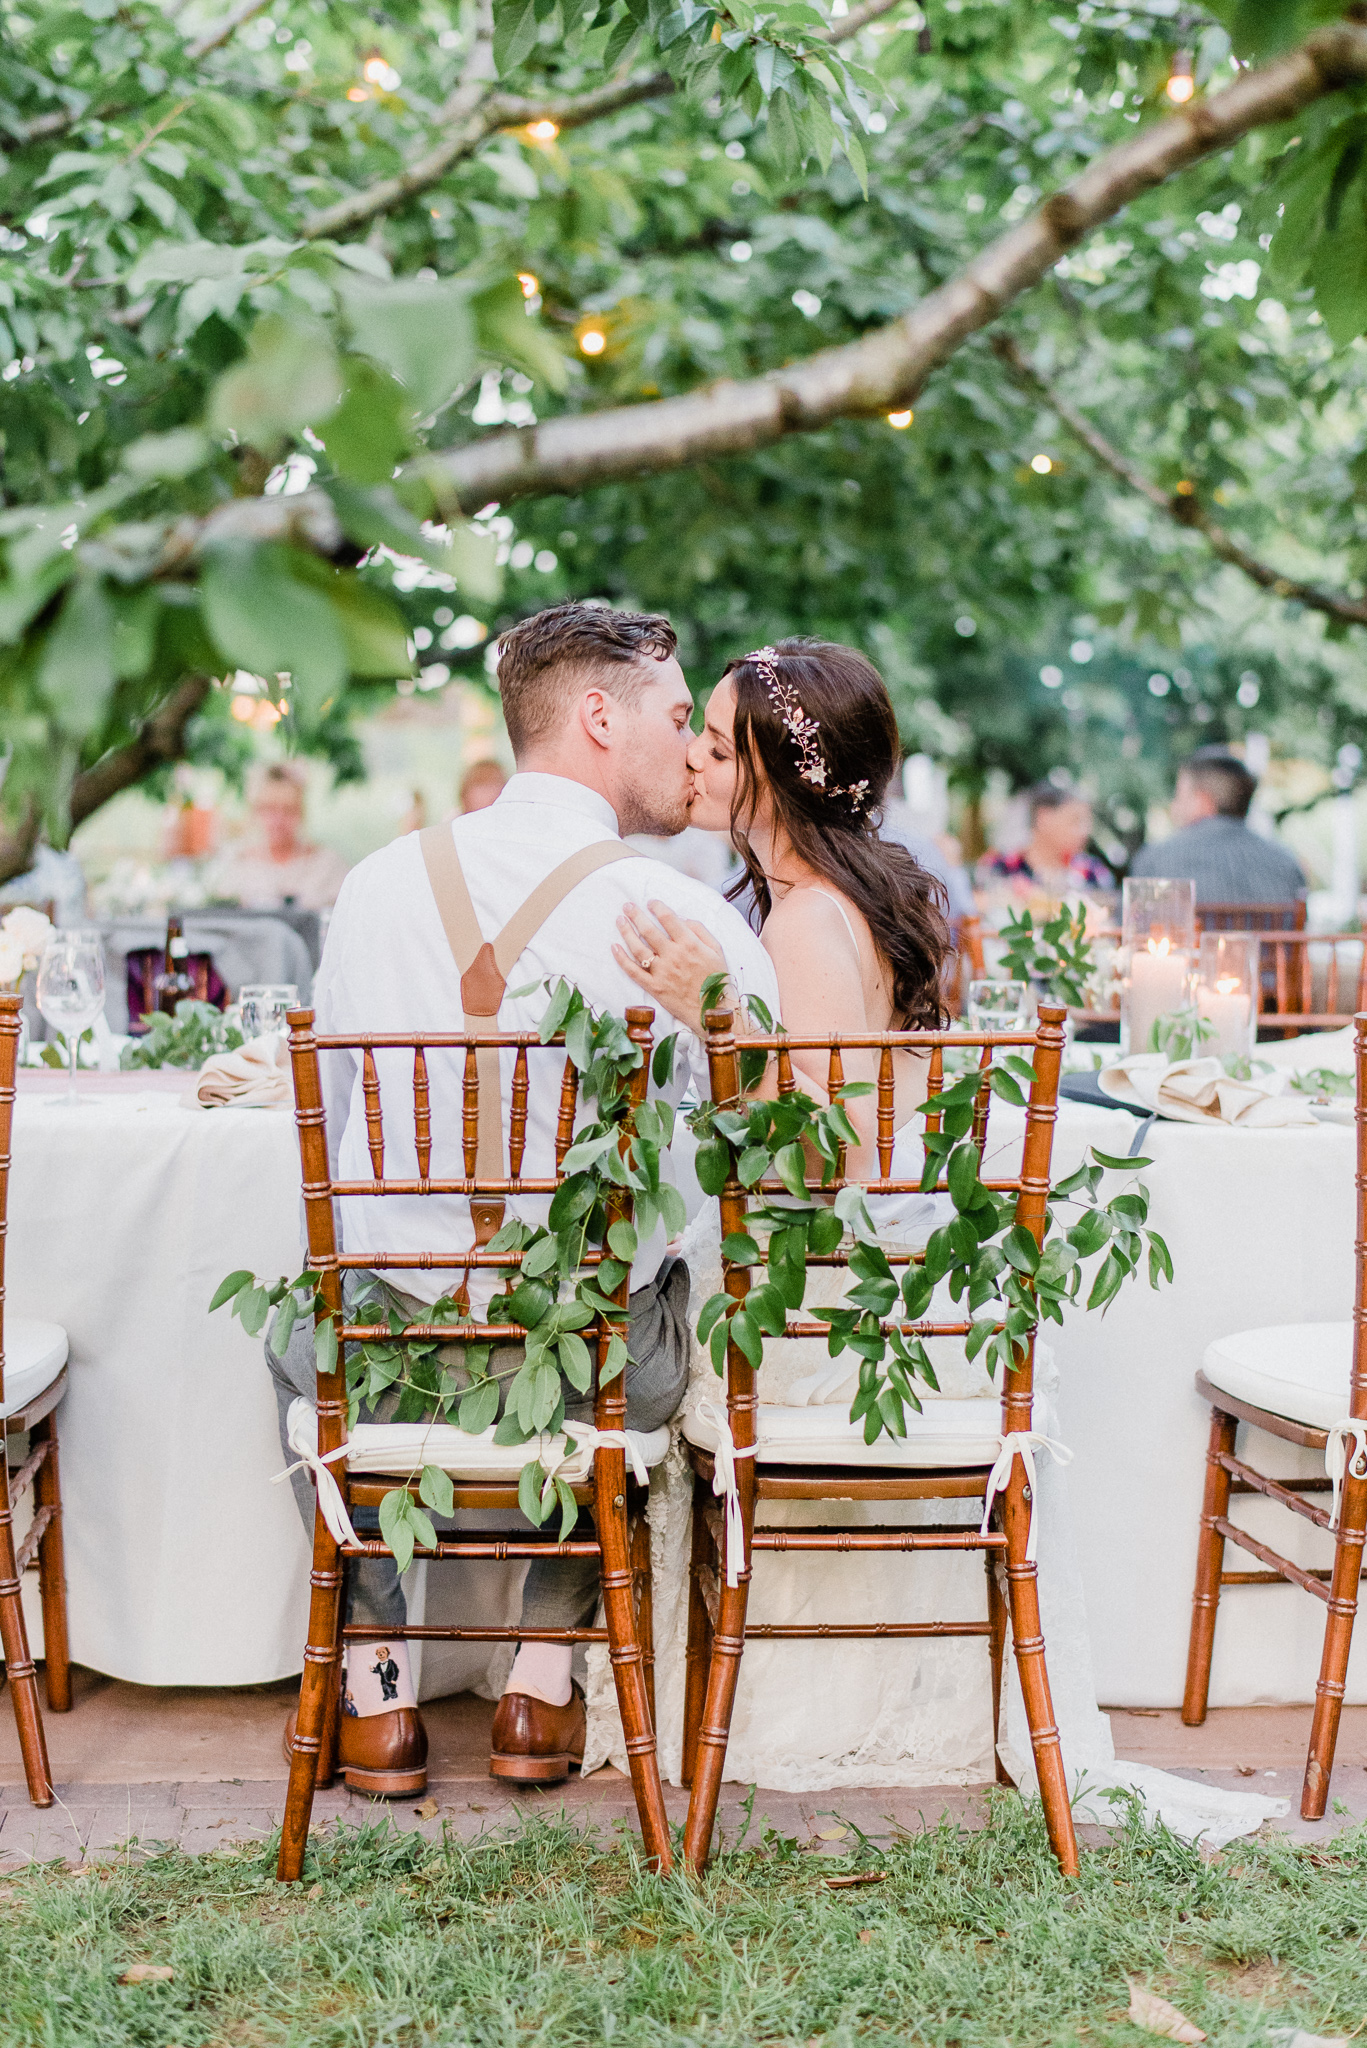 Outdoor dinner wedding reception at Gracewood Estates, Niagara-on-the-Lake by Jenn Kavanagh Photography